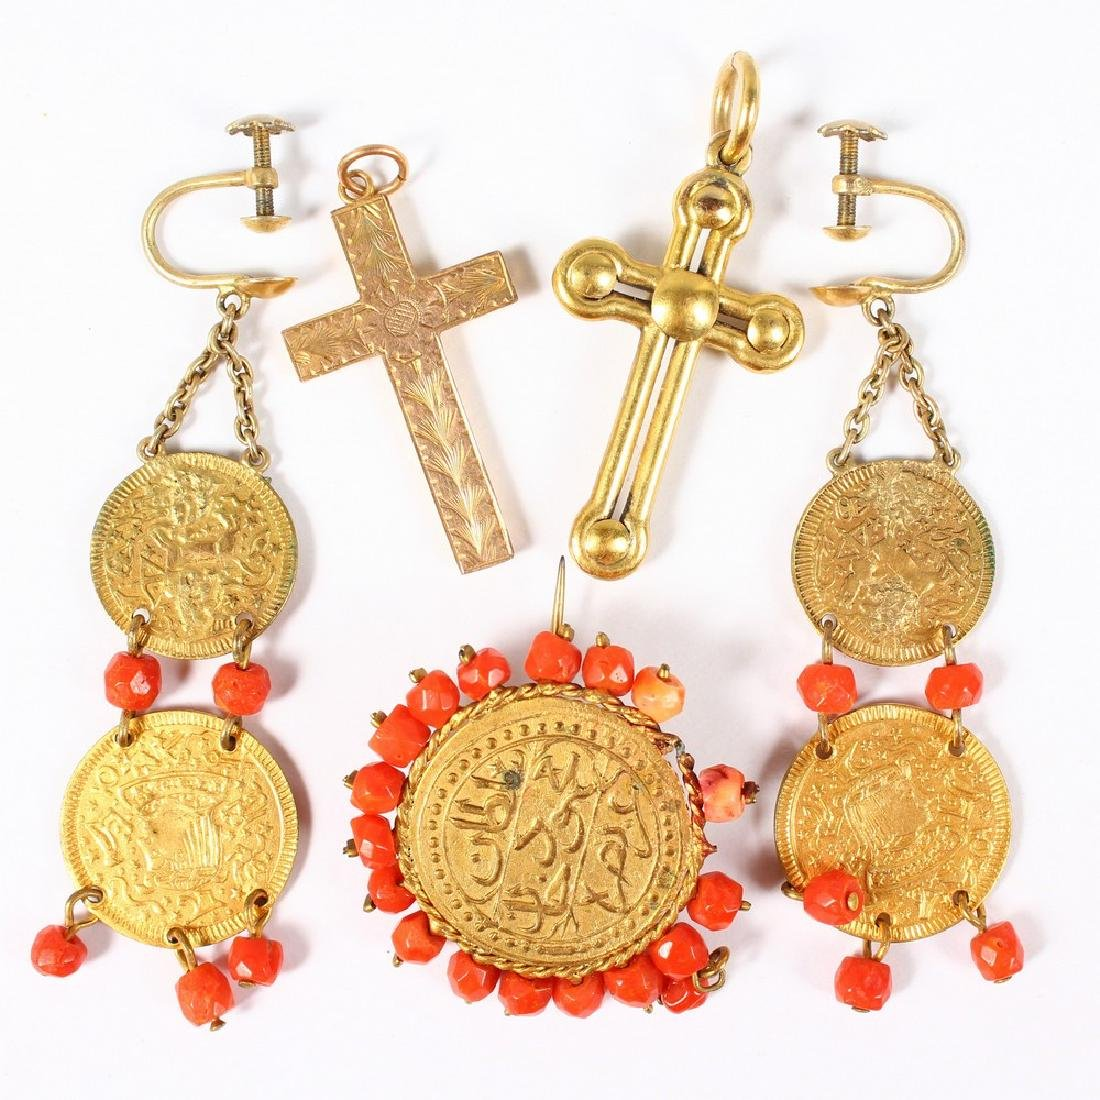 TWO GOLD CROSSES, COIN BROOCH AND DROP EARRINGS.